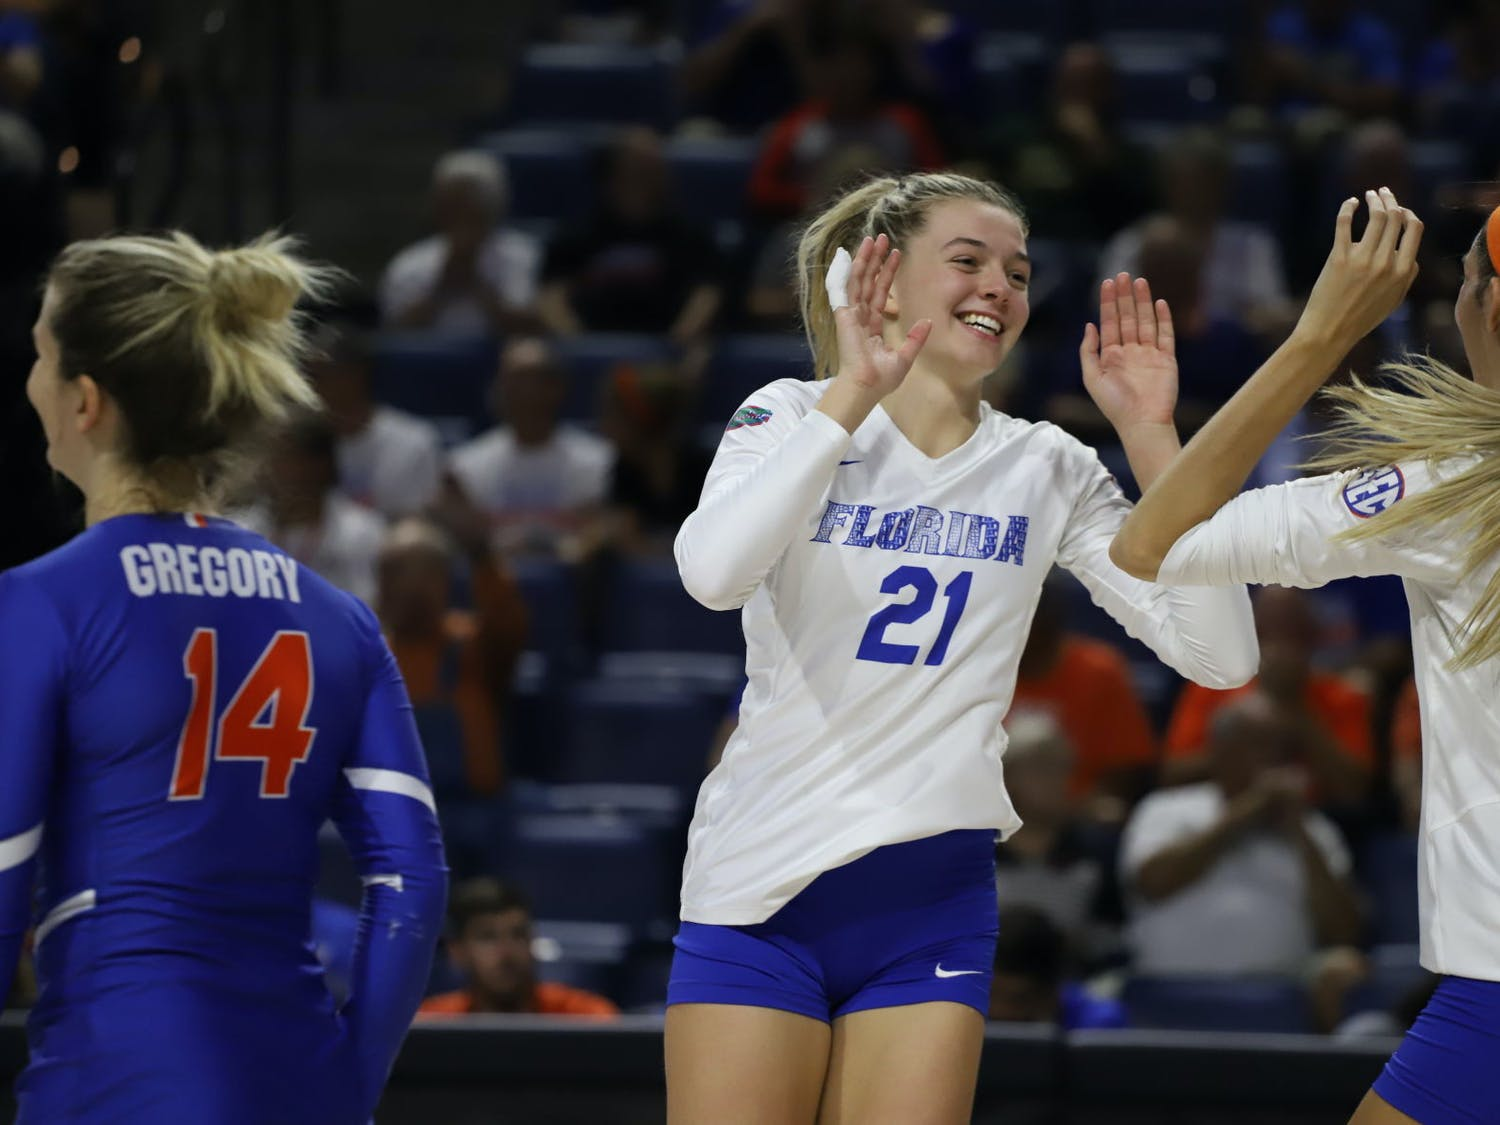 Florida's Marlie Monserez celebrates with her teammates during a game in 2019.